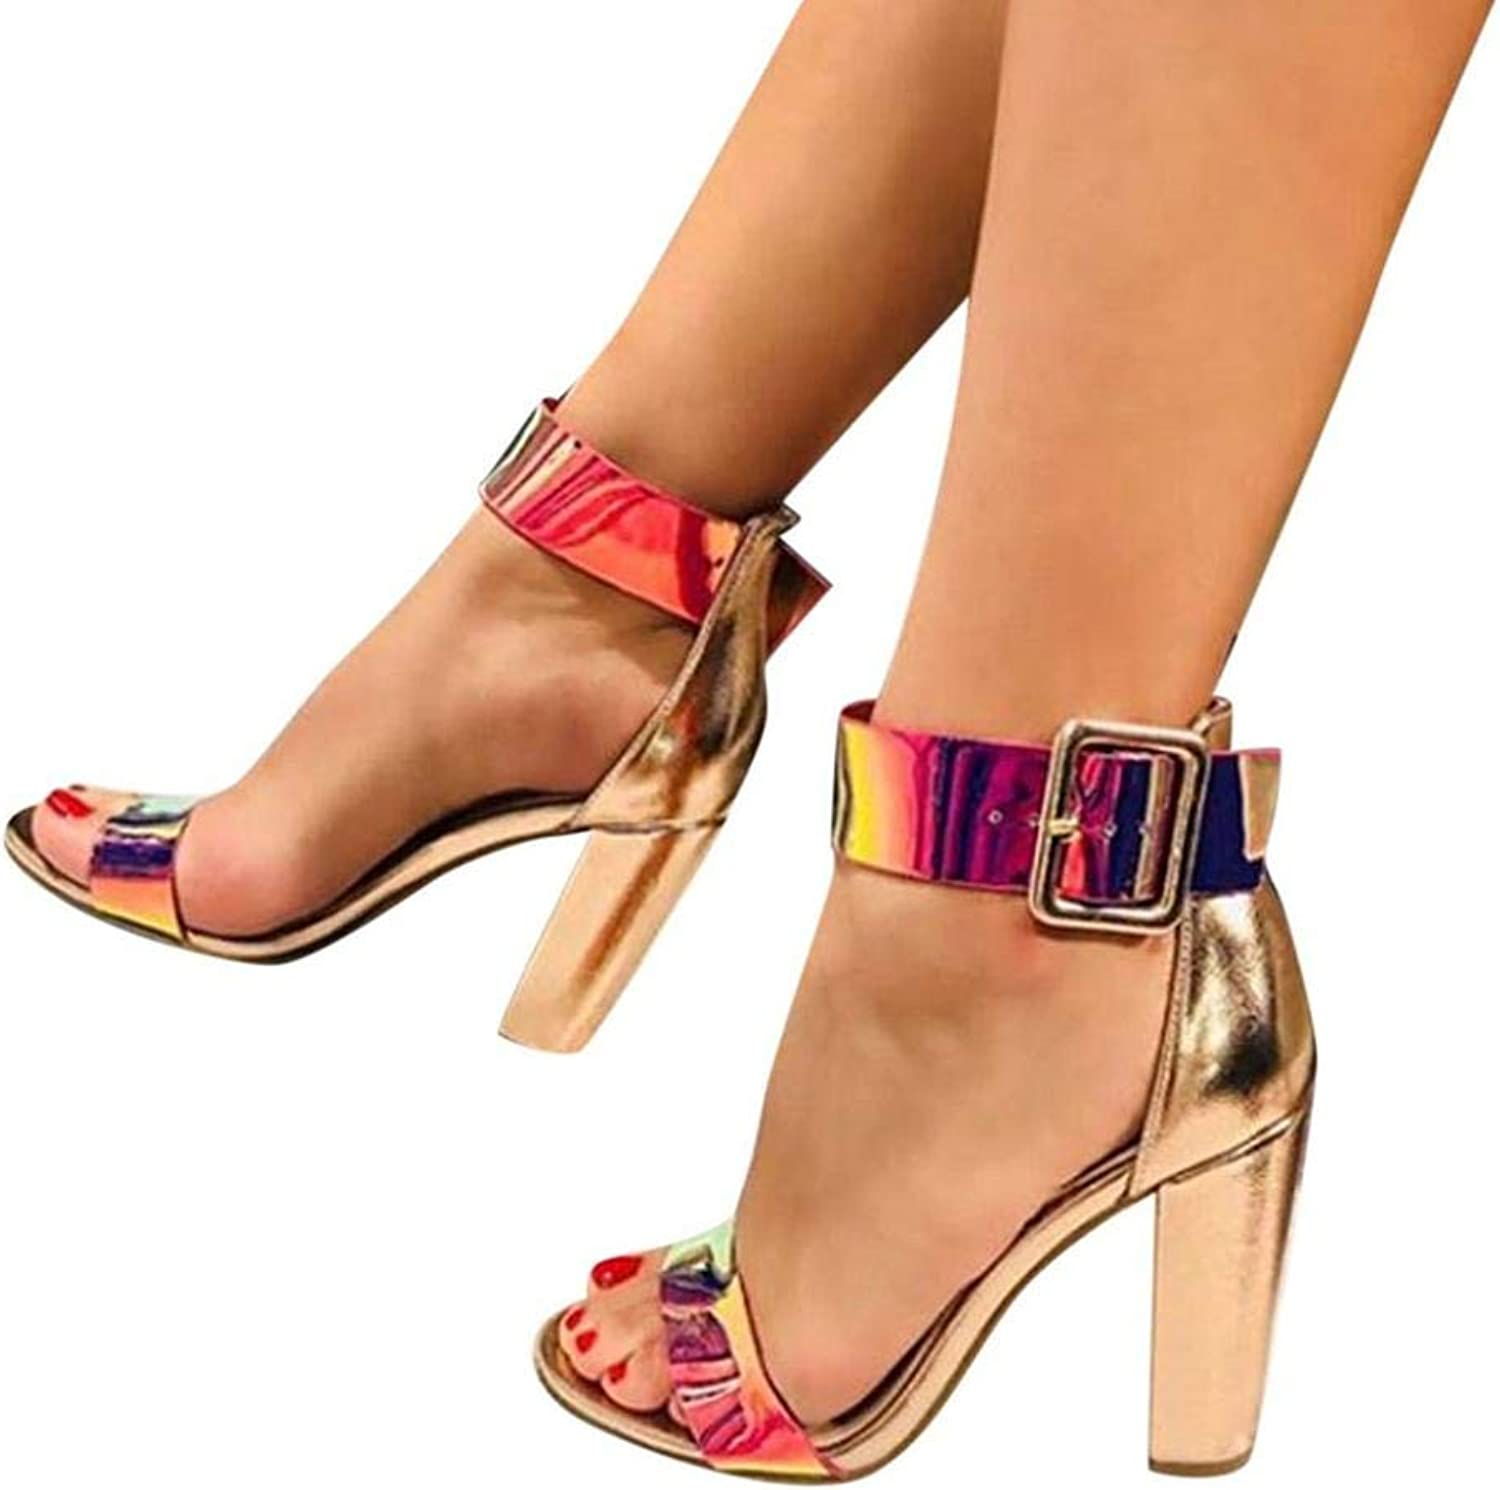 Women Sexy Nightclub High Heel Sequined Ankle Strap Party Pumps